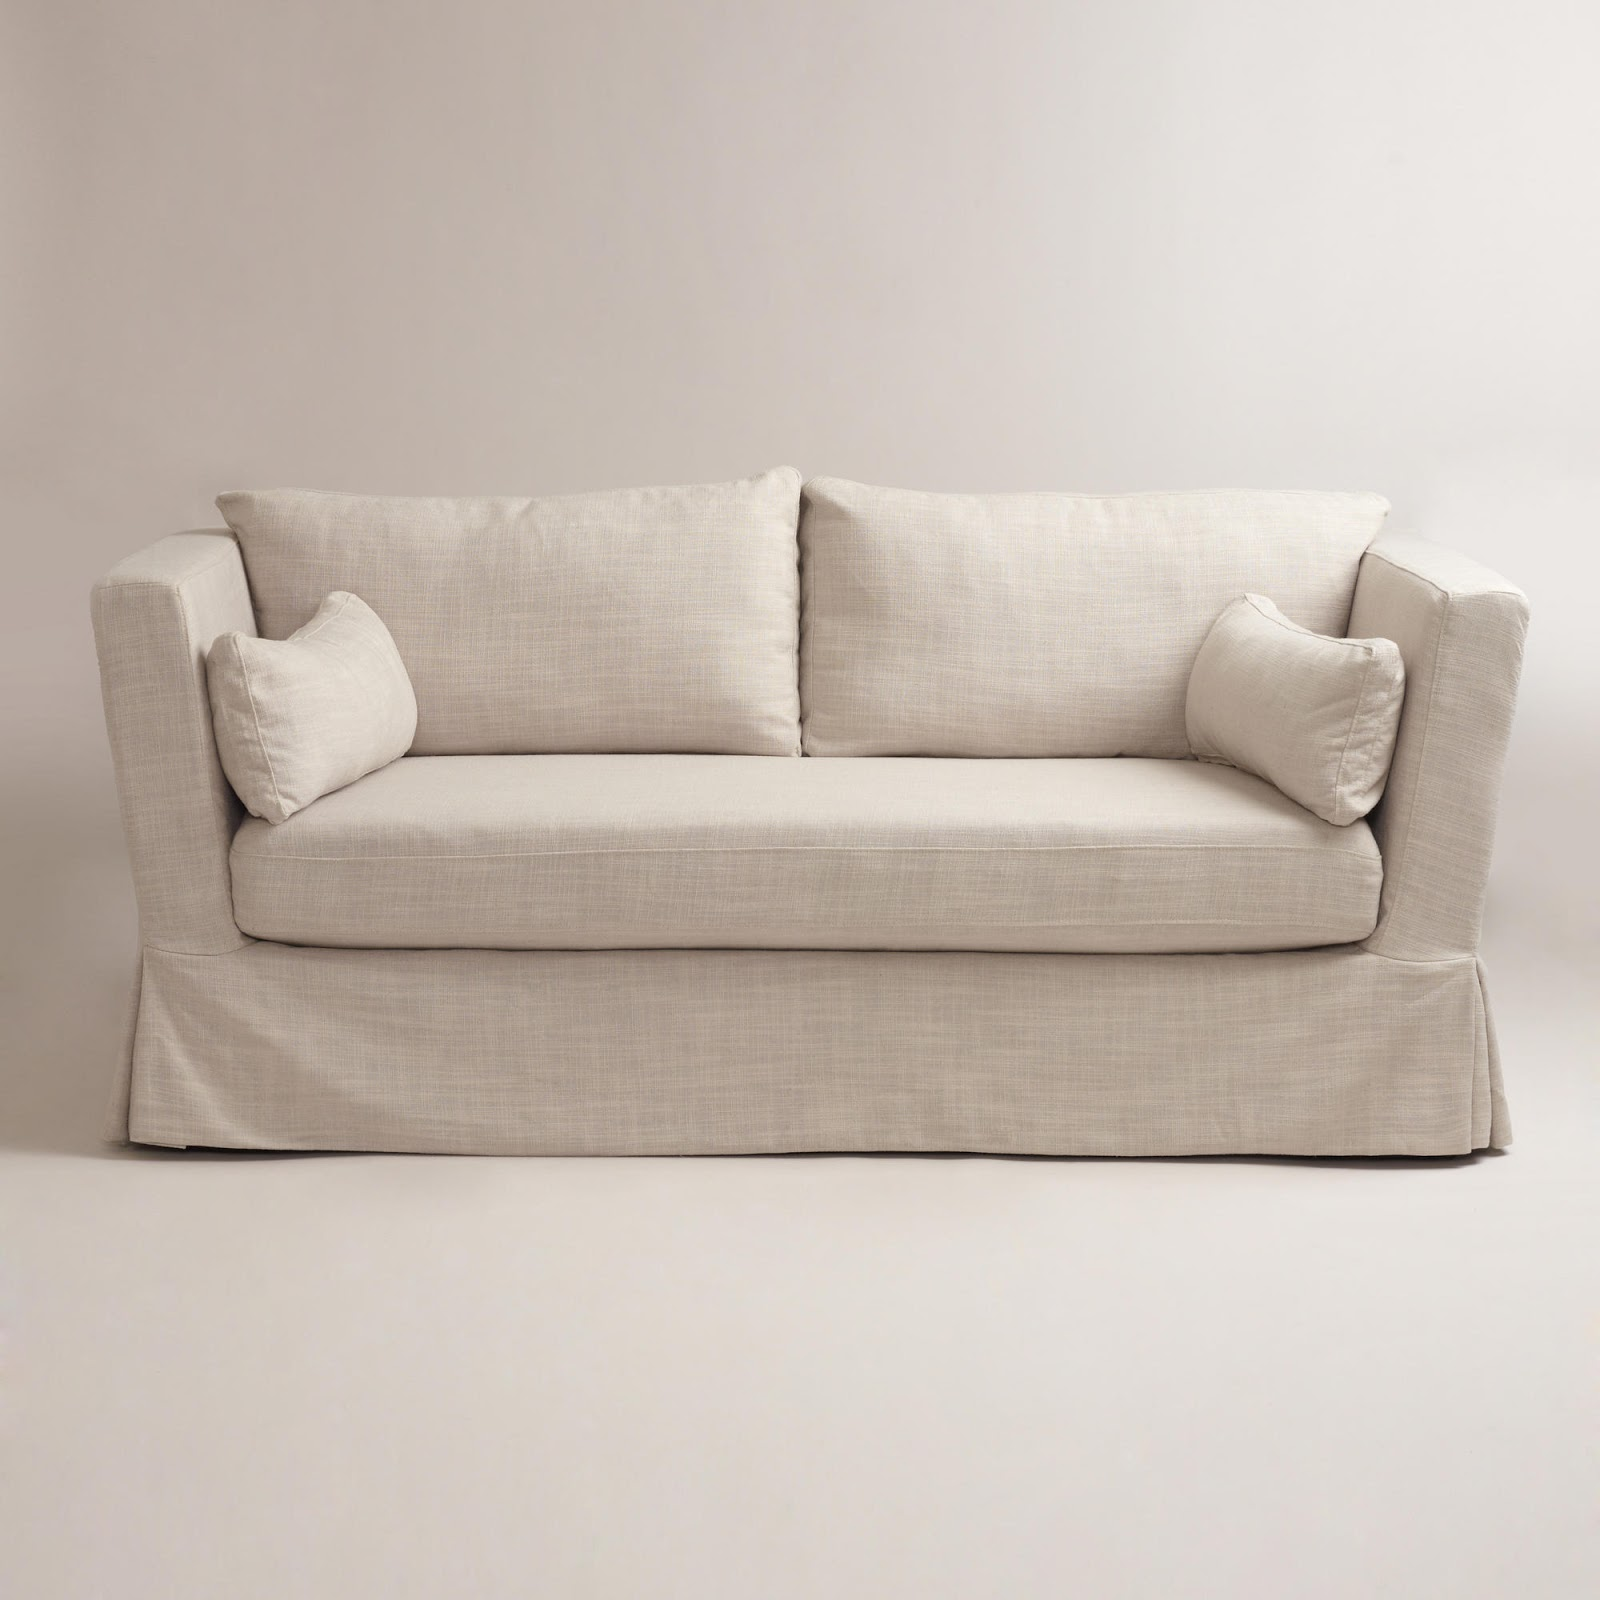 Deconstructed Shelter Arm Sofa Review Chesterfield Restoration Hardware Slipcover Collections Rh